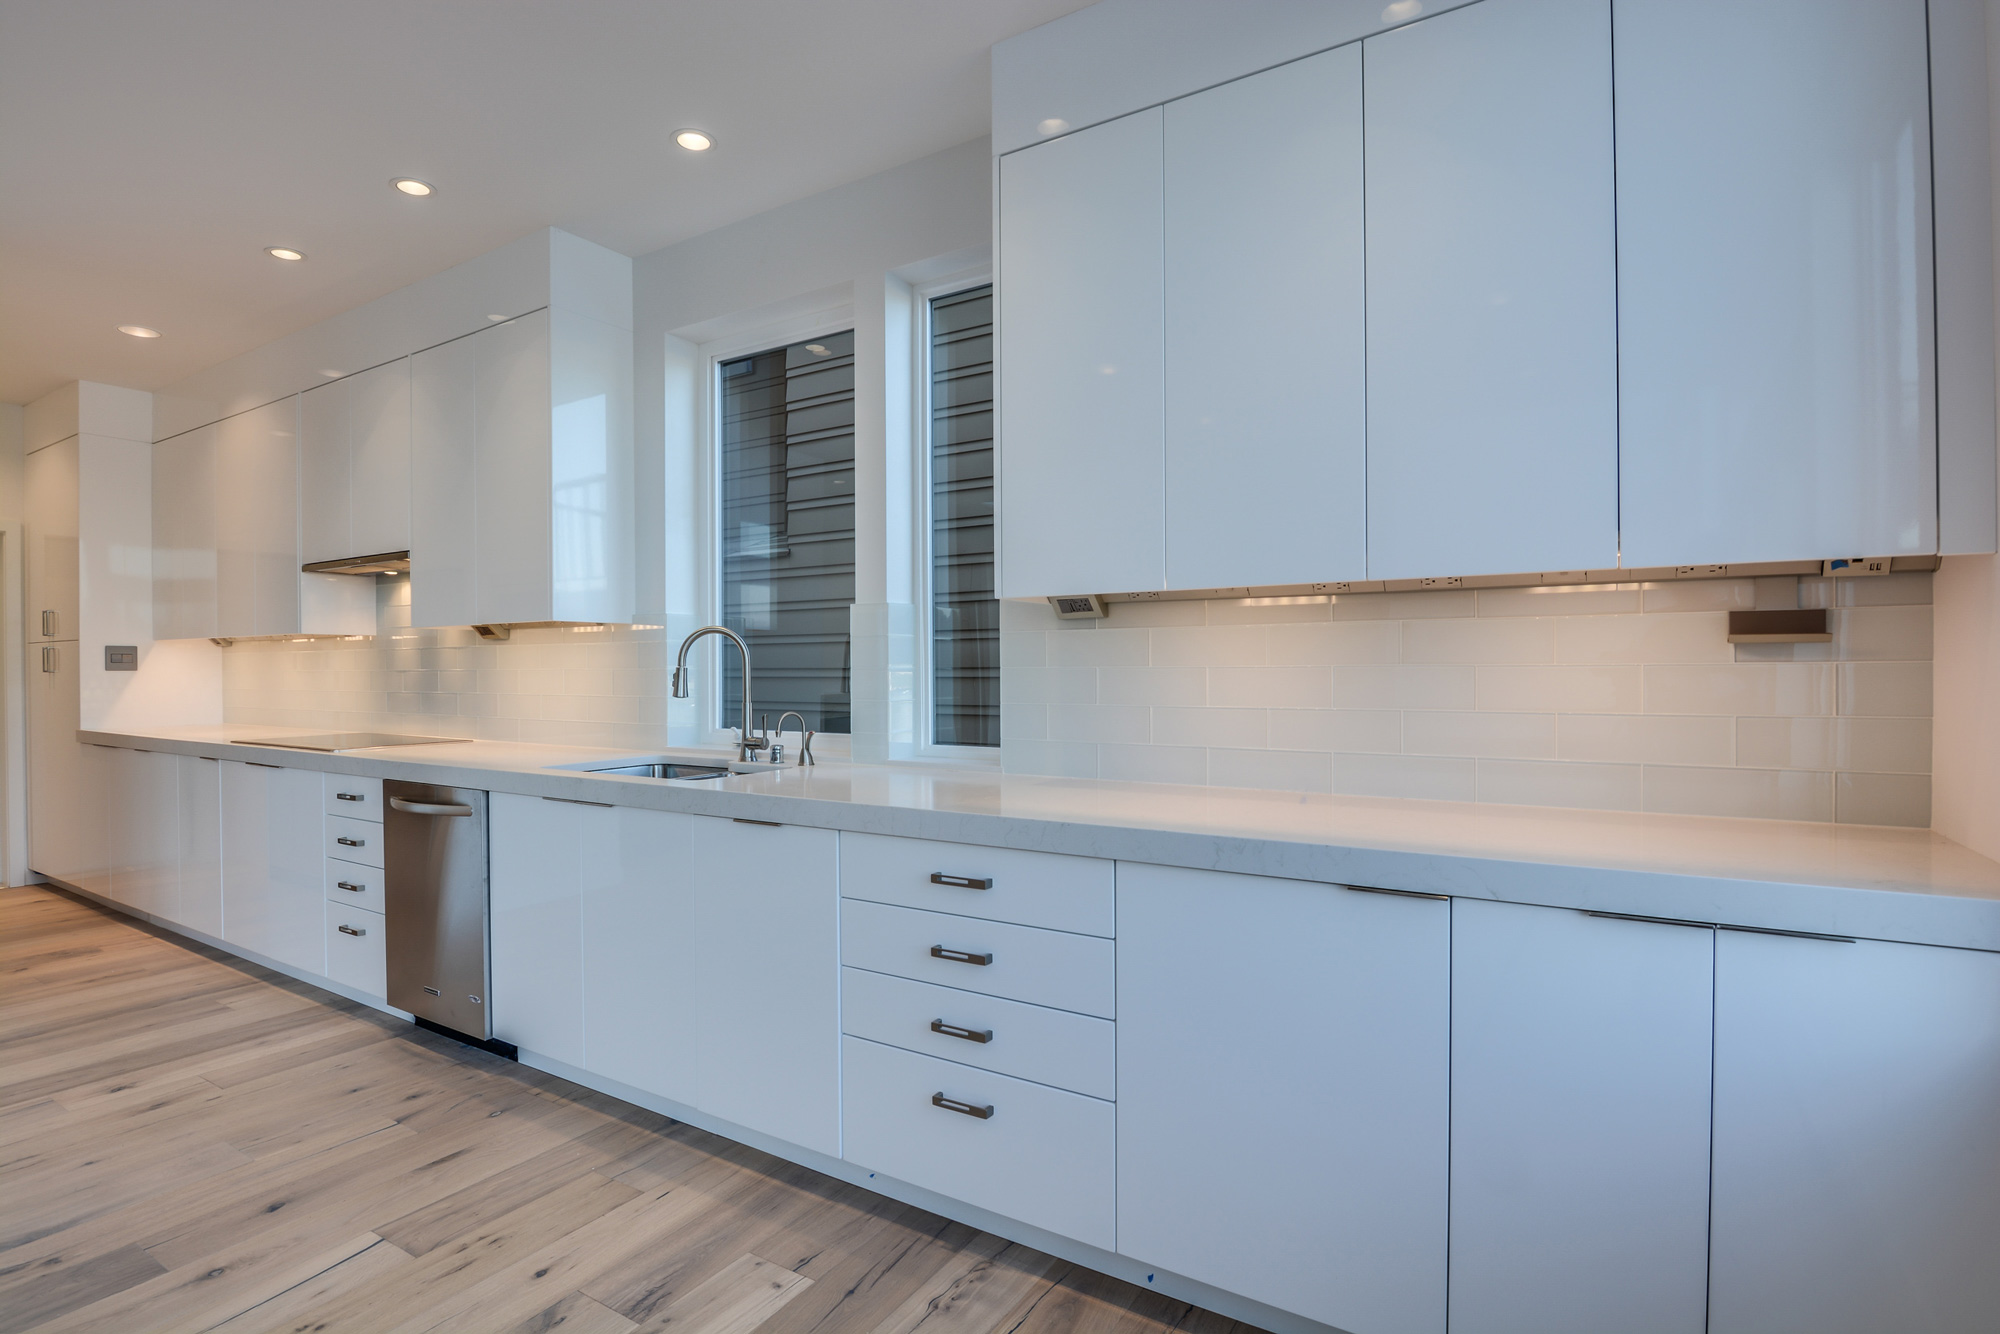 spacious room with kitchen sink and beige wooden tiles